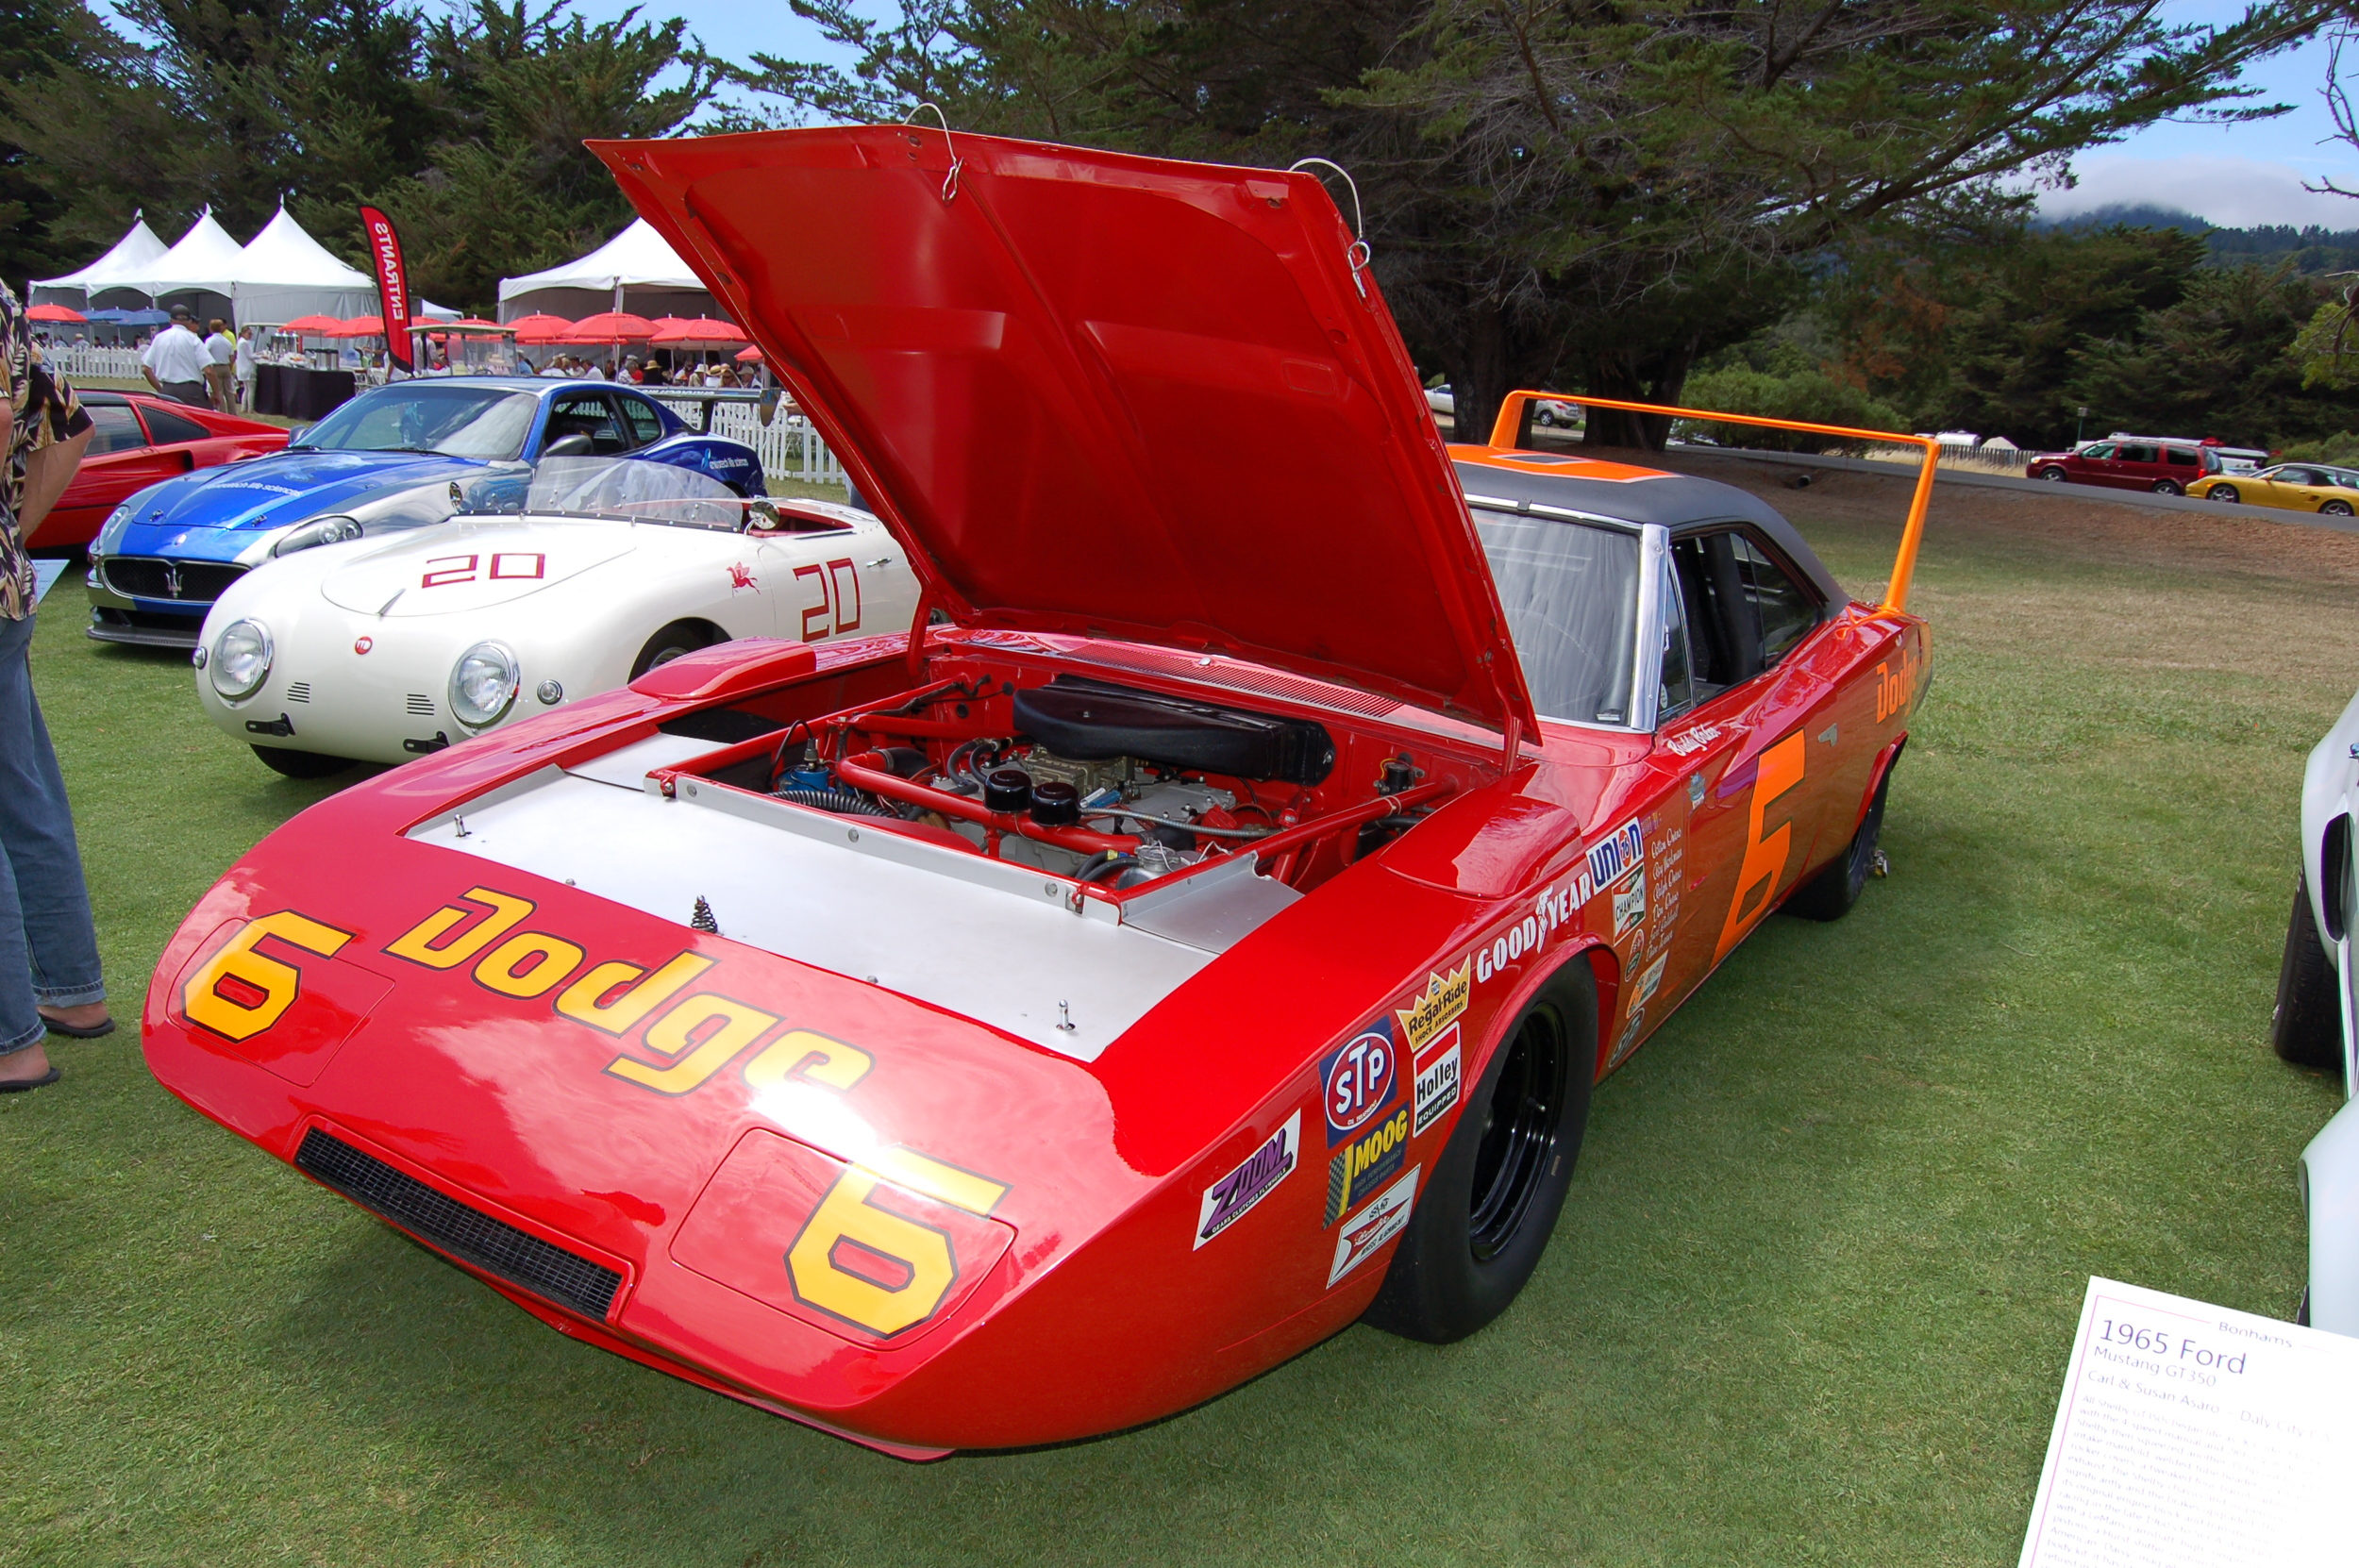 This poor Dodge Charger Daytona refused to start in front of the judges!